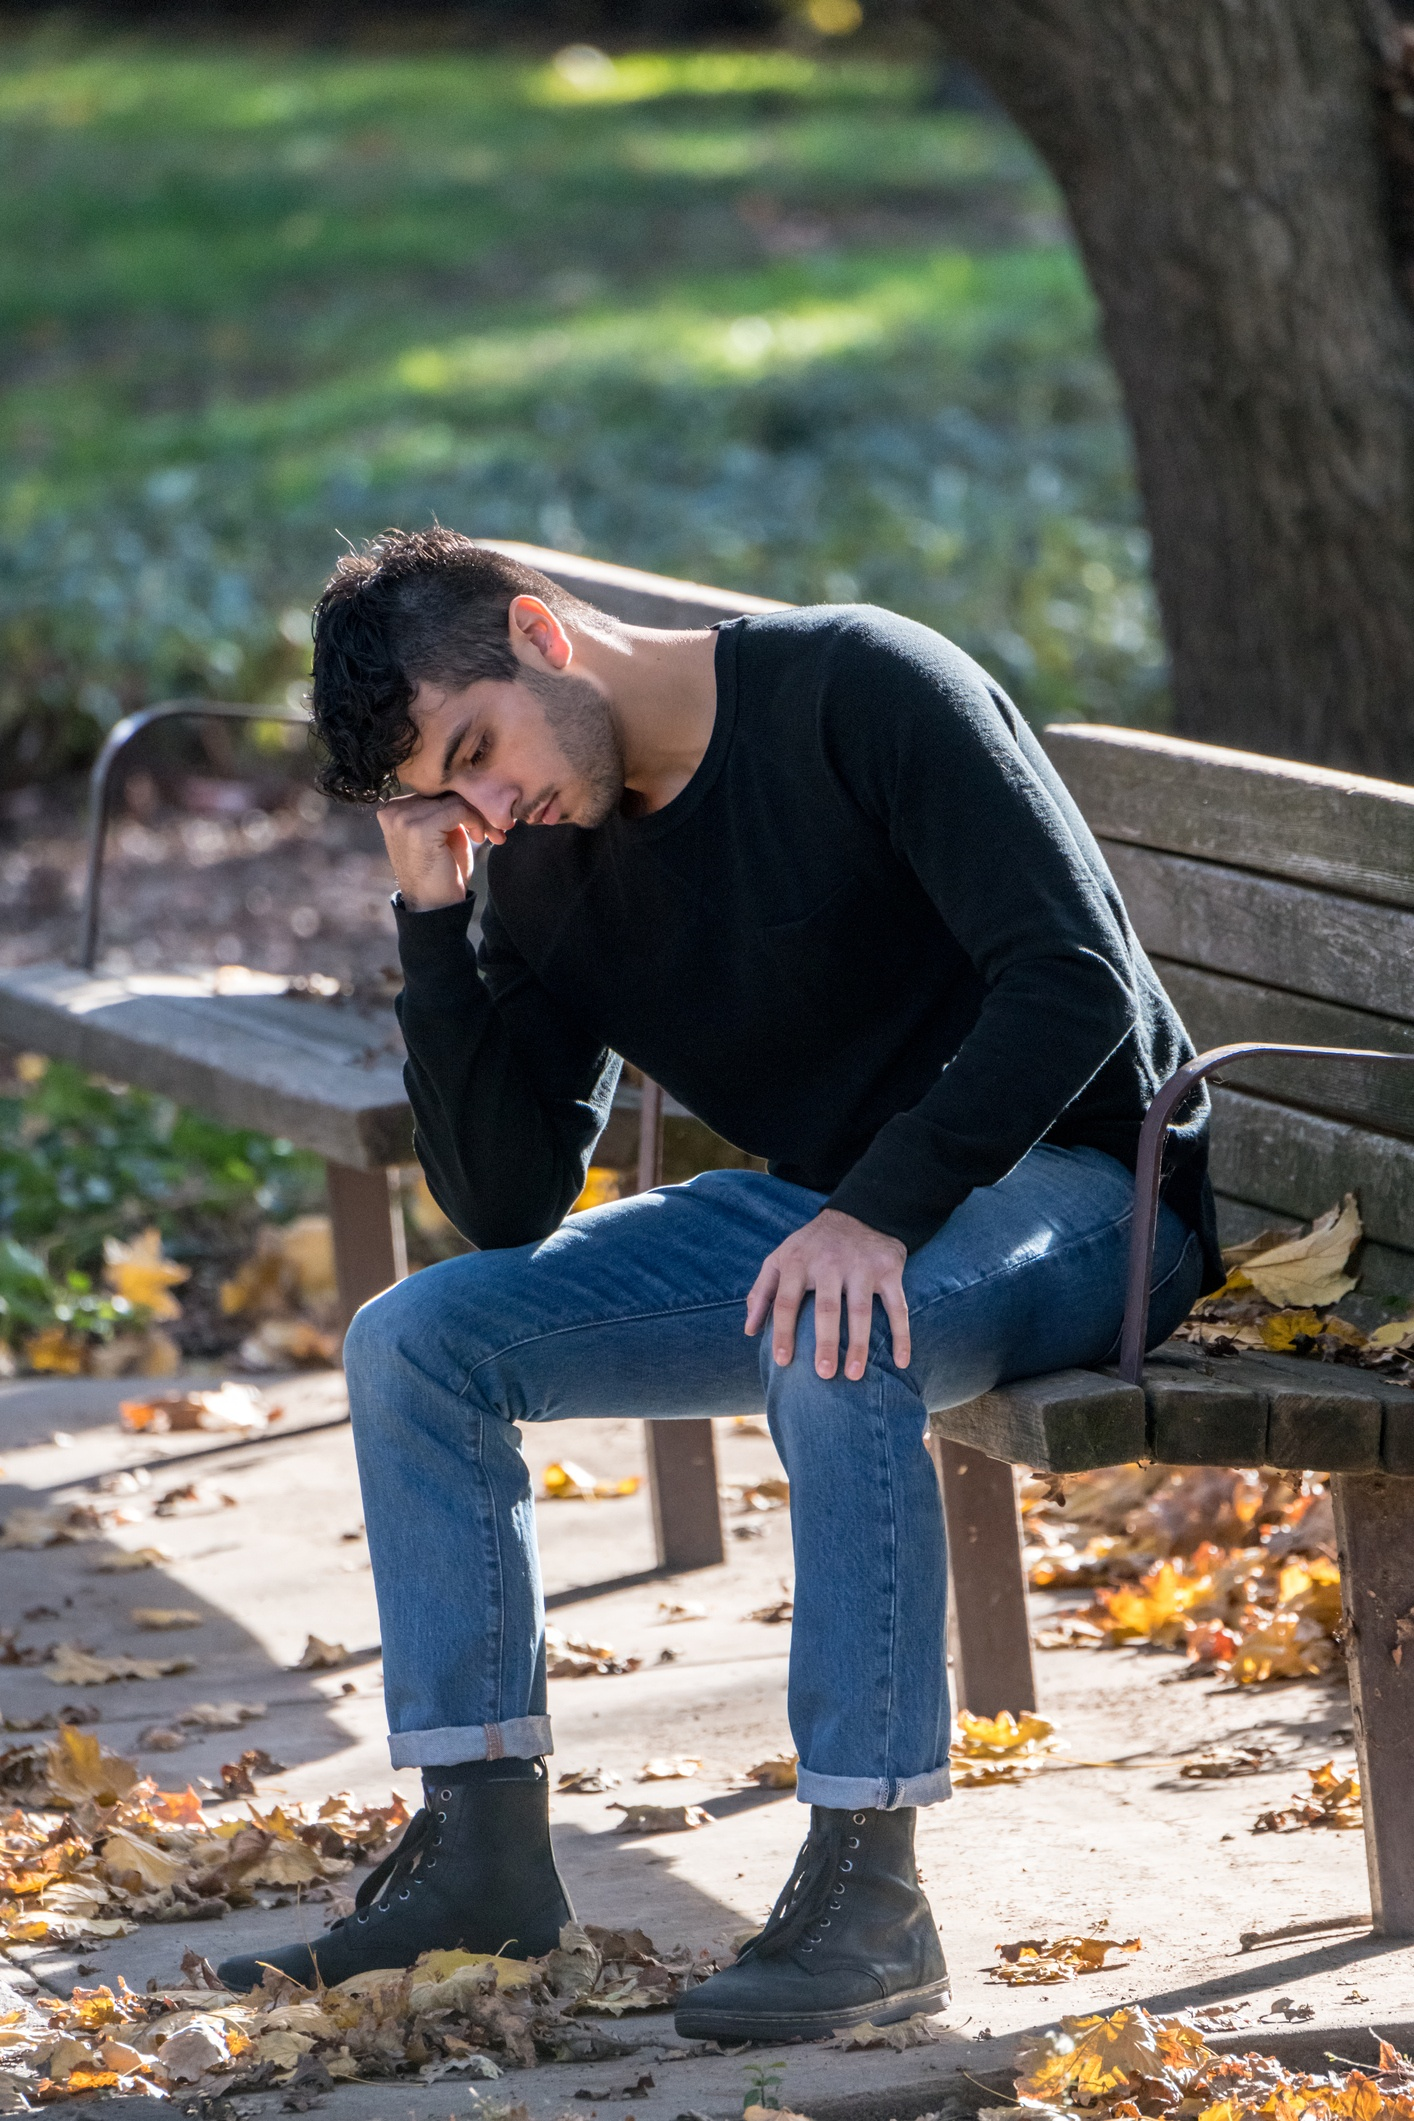 Young man on a park bench feeling sad and seeking resolution